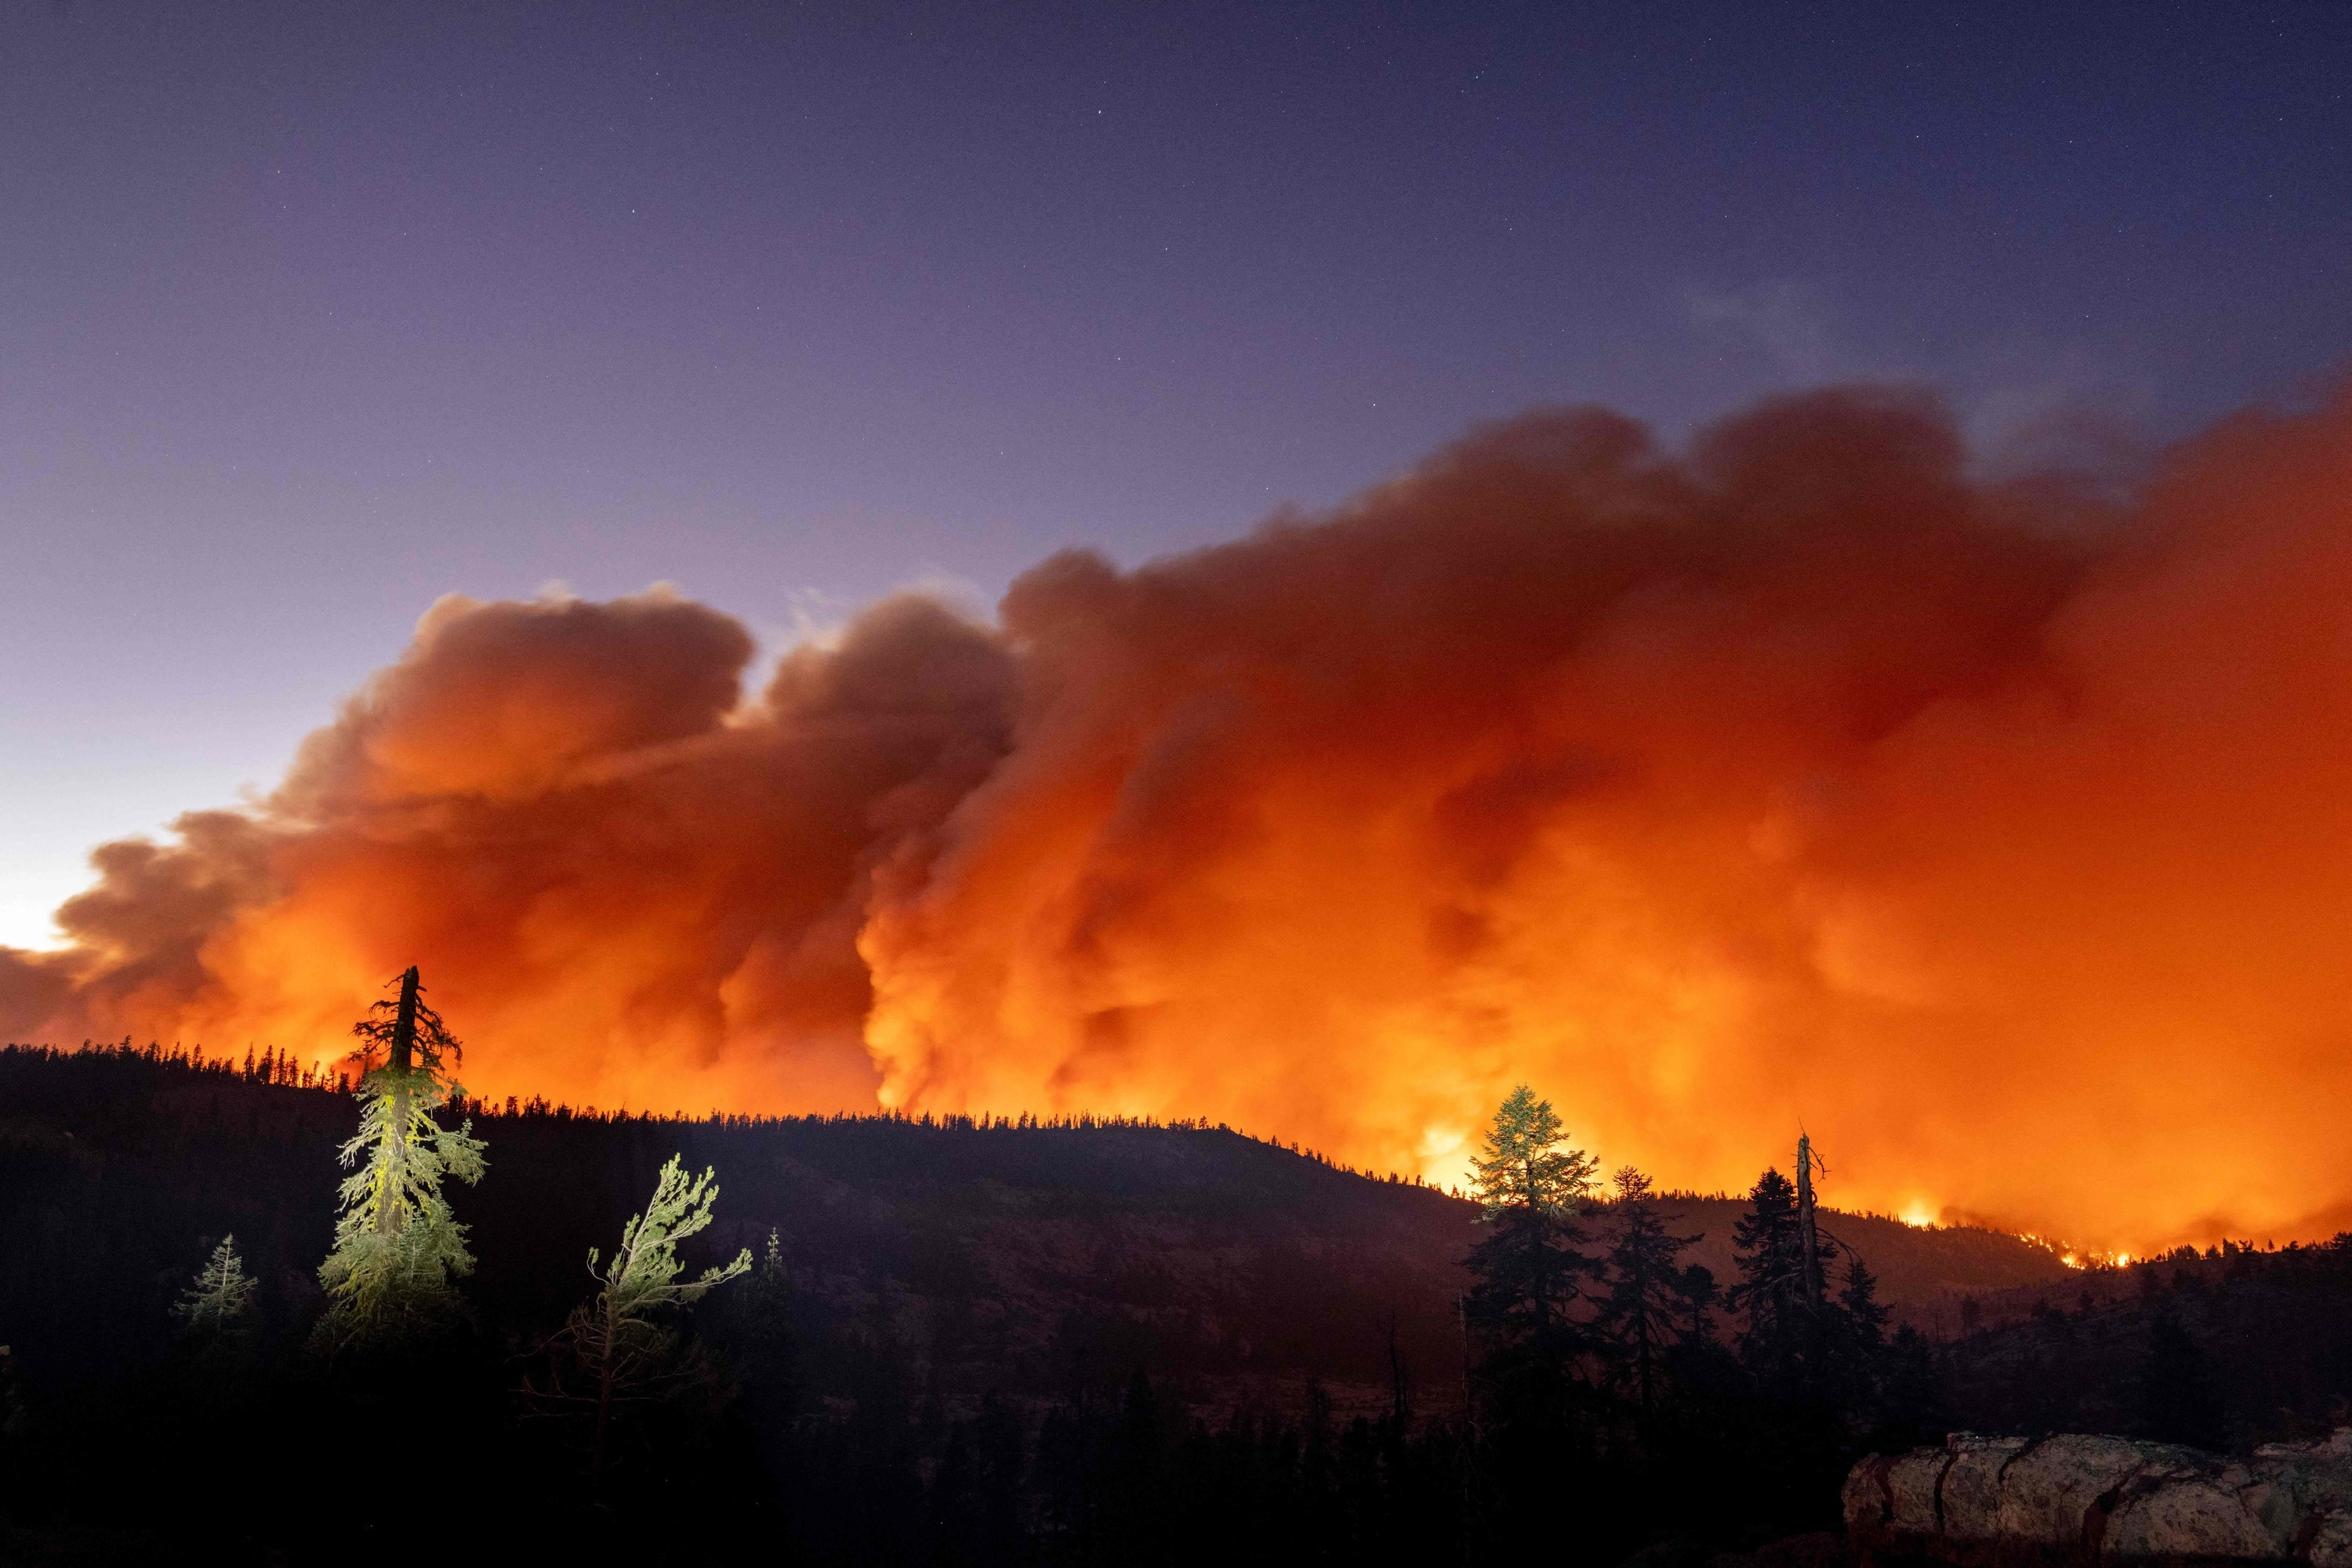 A massive cloud of smoke fills the sky over a forested ridge